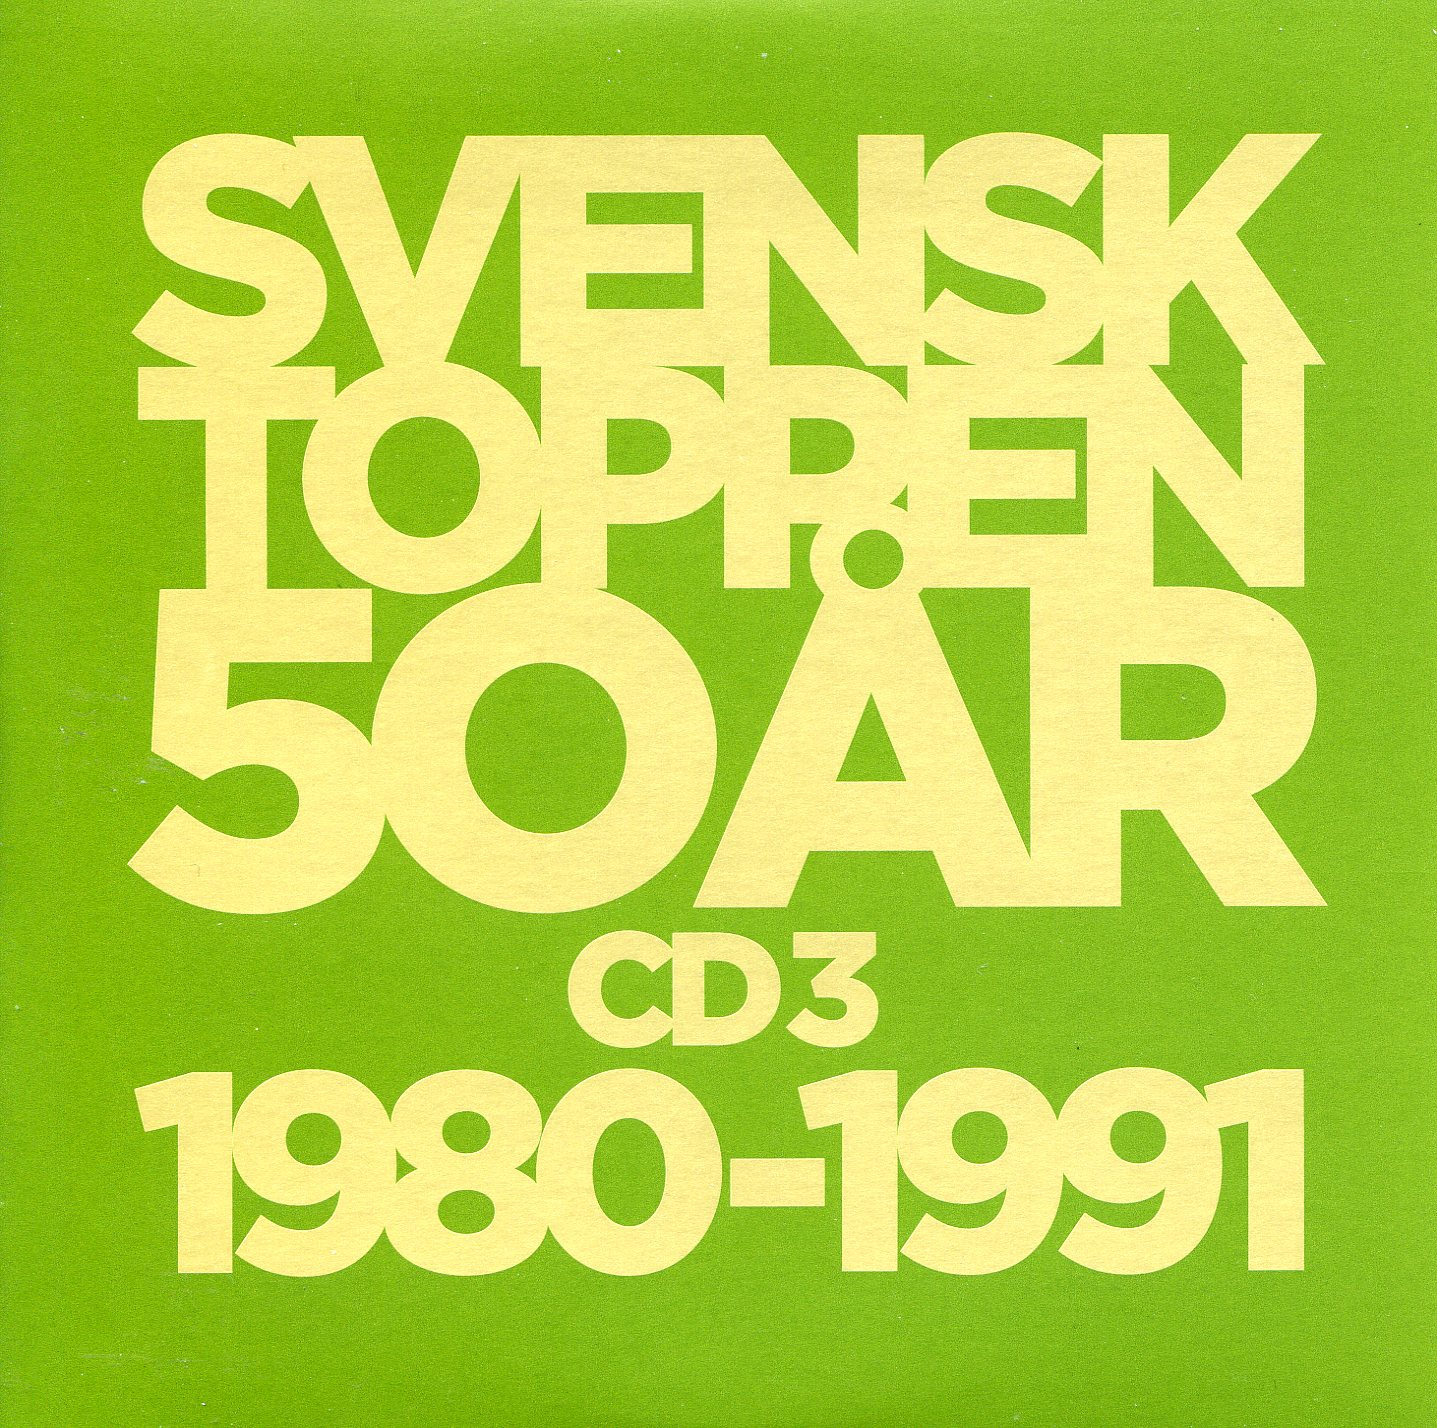 svensktoppen 50 år cd box COVERS.BOX.SK ::: svensktoppen 50  r   5cd box (2012) cd 3   high  svensktoppen 50 år cd box